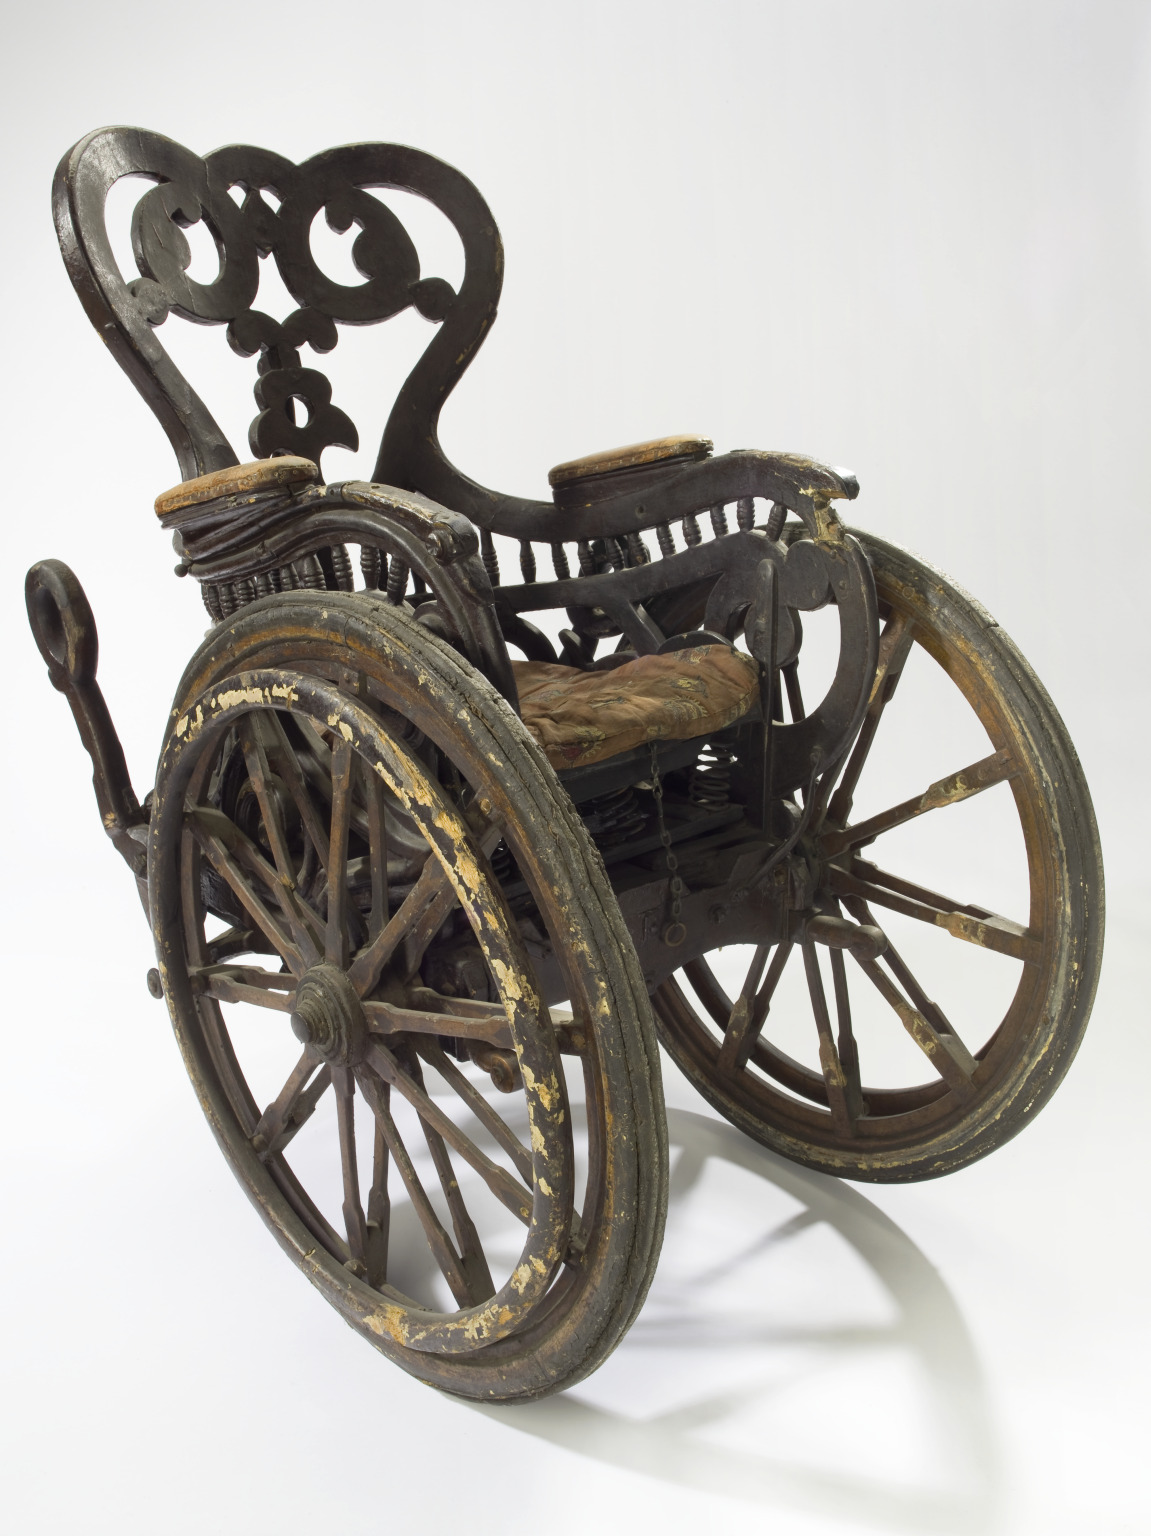 Invalid chair, Europe, 1850-1890: Unlike modern wheelchairs that have four wheels, this chair has three: two large front wheels and one small rear wheel. This means the patient was unable to wheel the chair themselves. They would have had an assistant. The chair is heavy so presumably they would not have gone very far or very fast. This elaborately carved chair dates from the late 1800s. It is made of wood with a sprung padded seat. It was donated to the Wellcome Collections by Liverpool Royal infirmary in 1928.